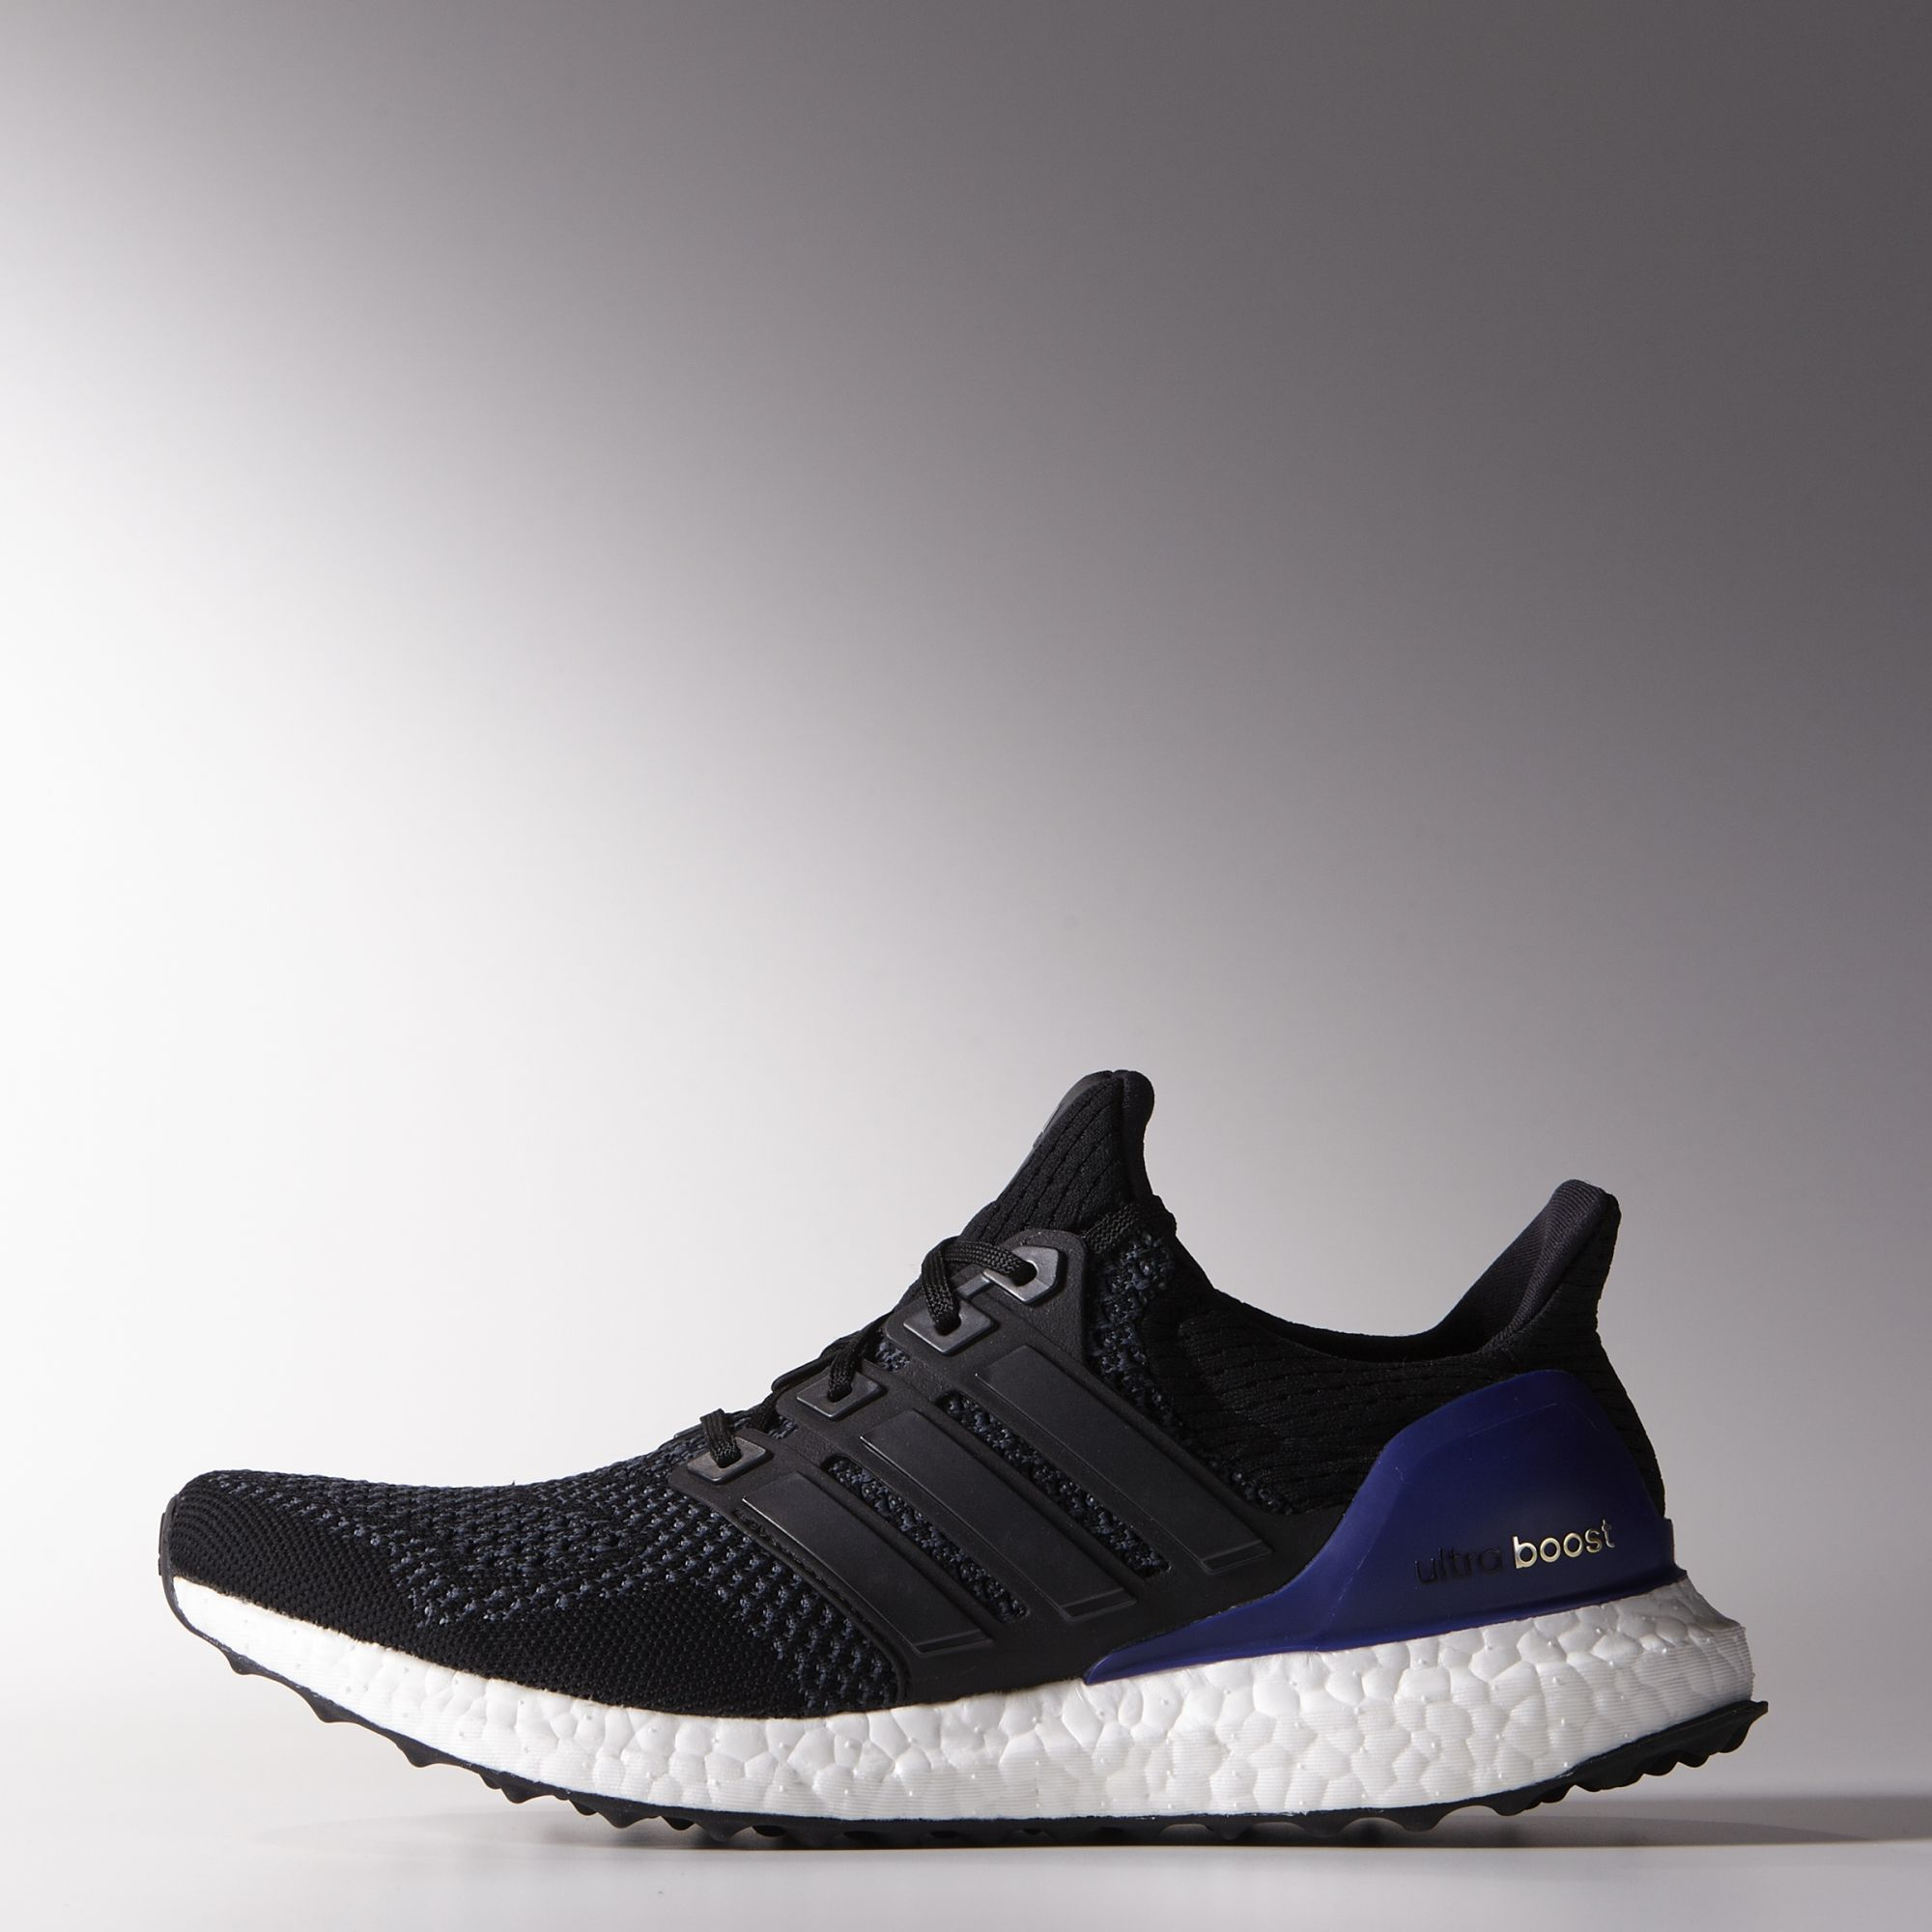 Men S And Women S Ultra Boost Energy Returning Boost In The Midsole Gives These Women S Running Sh Adidas Ultra Boost Shoes Running Shoes For Men Boost Shoes